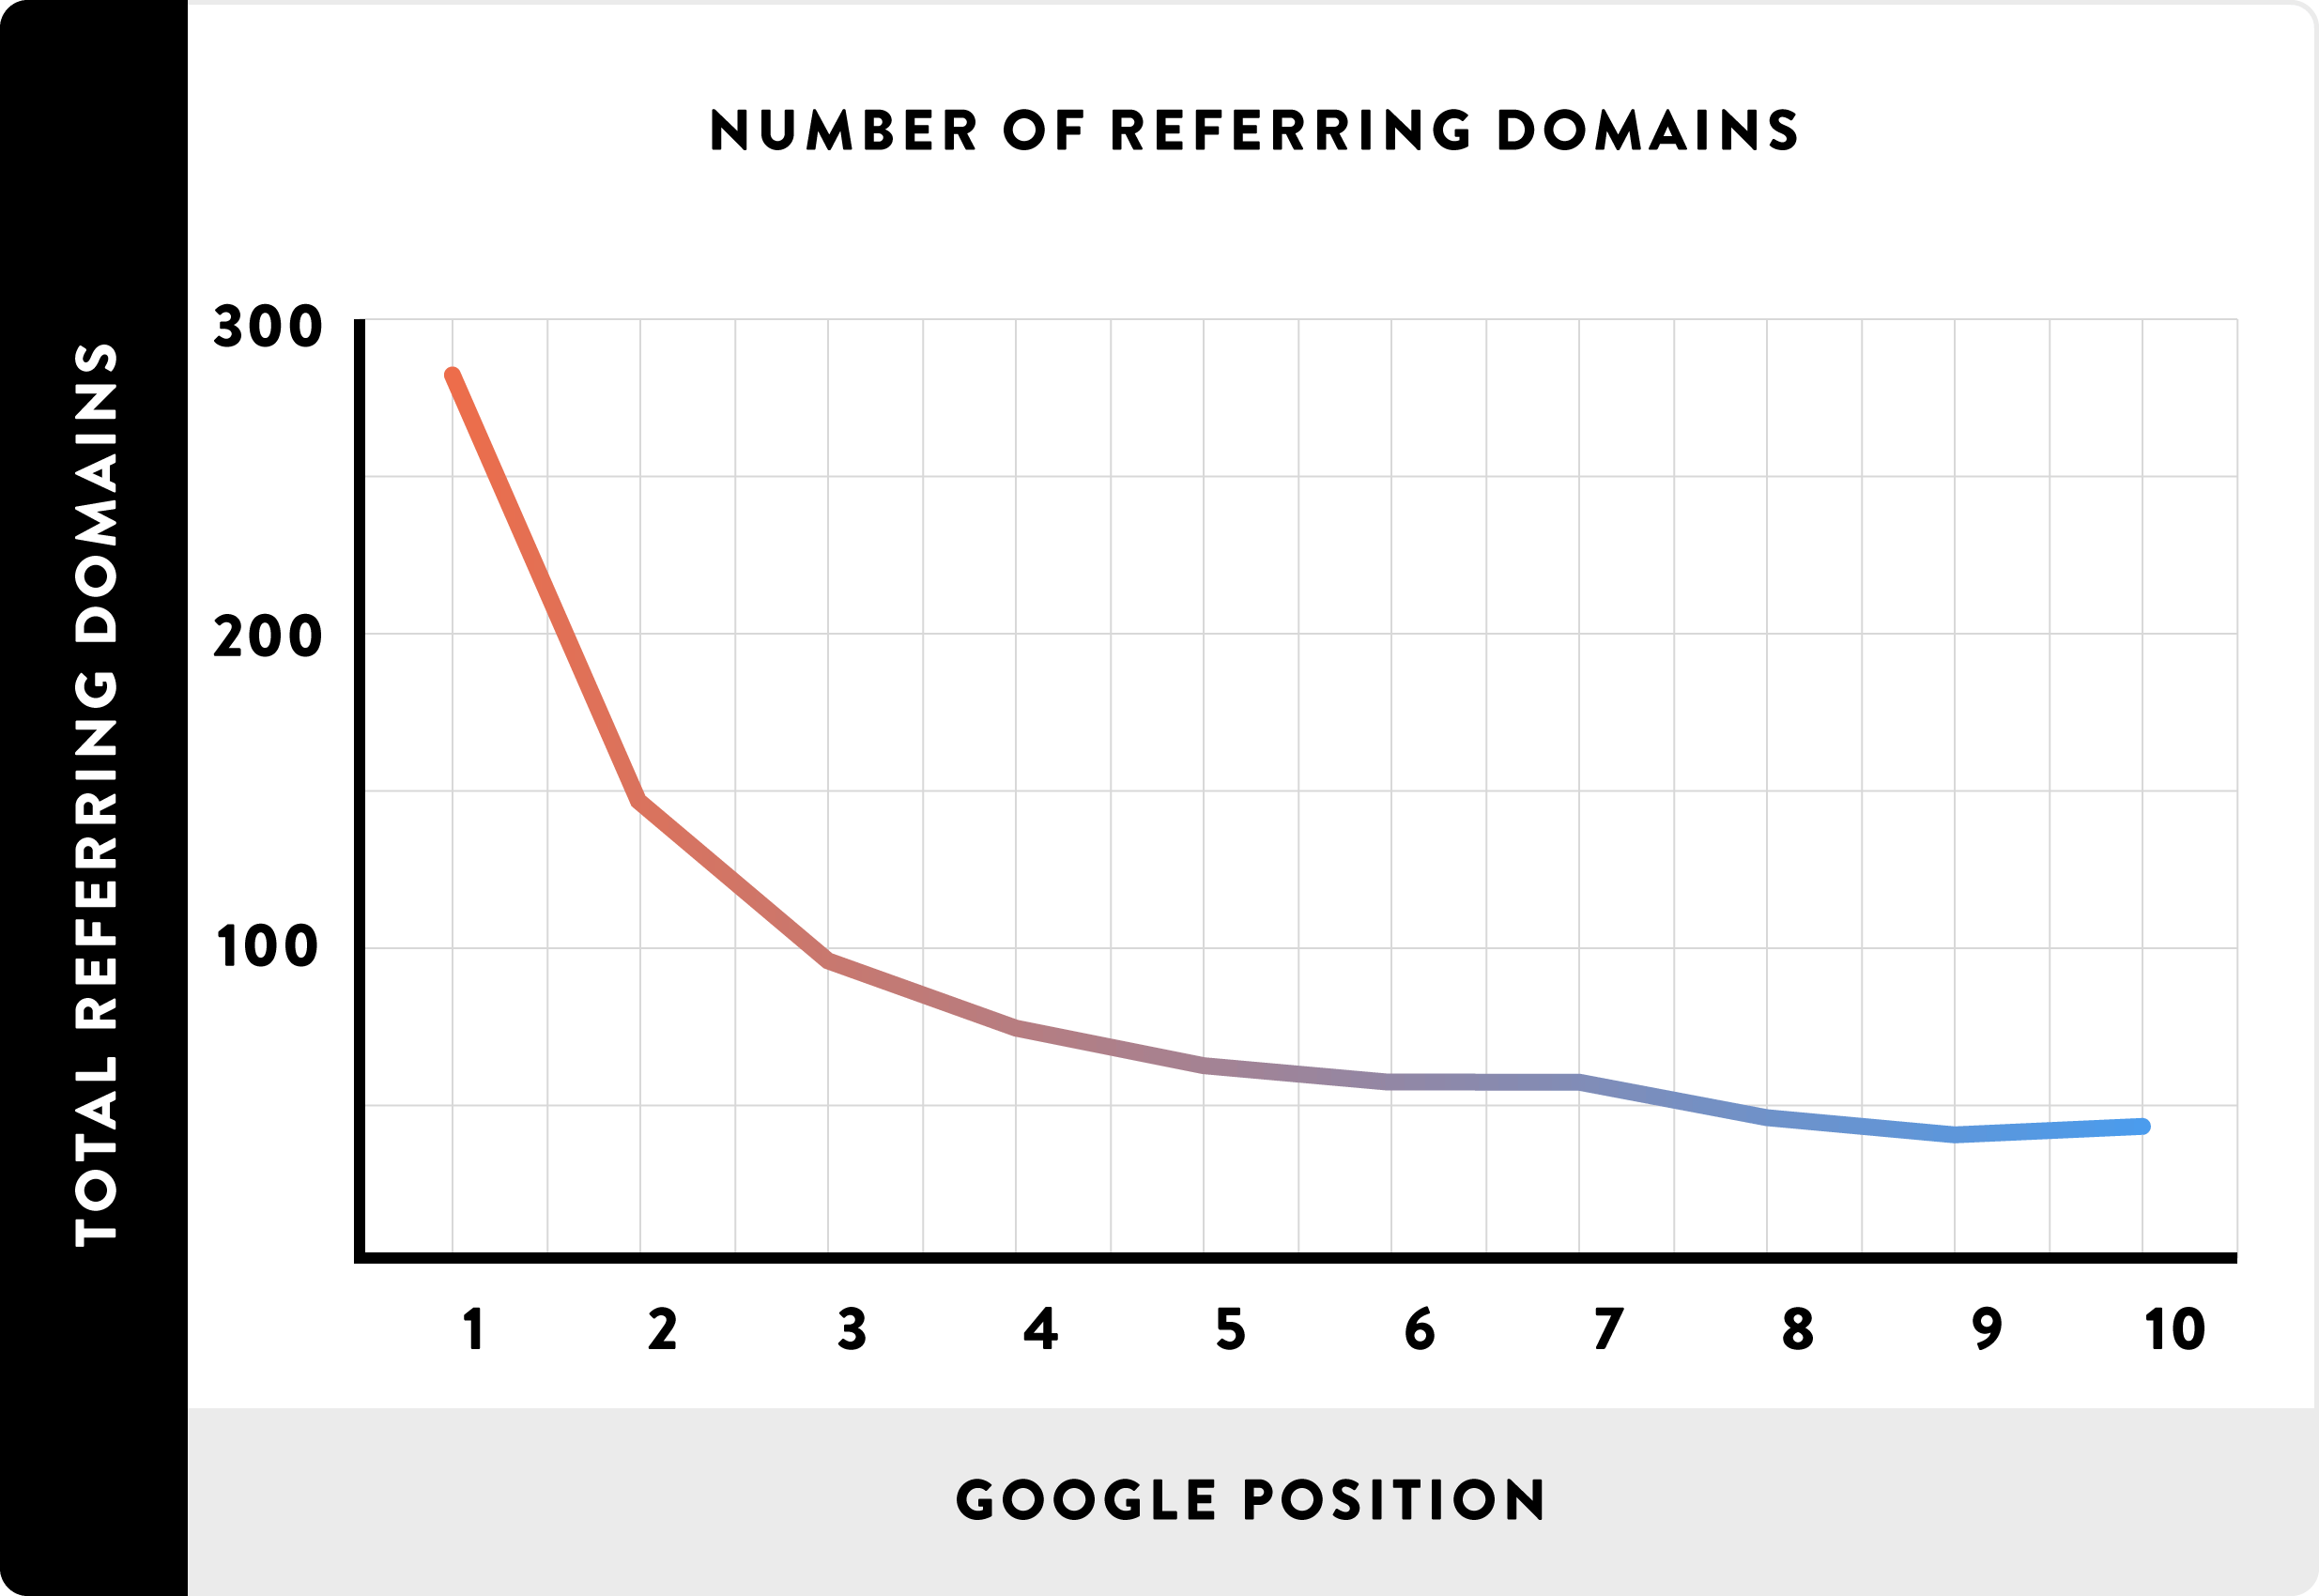 Number of referring domains (backlinks) and SERP.